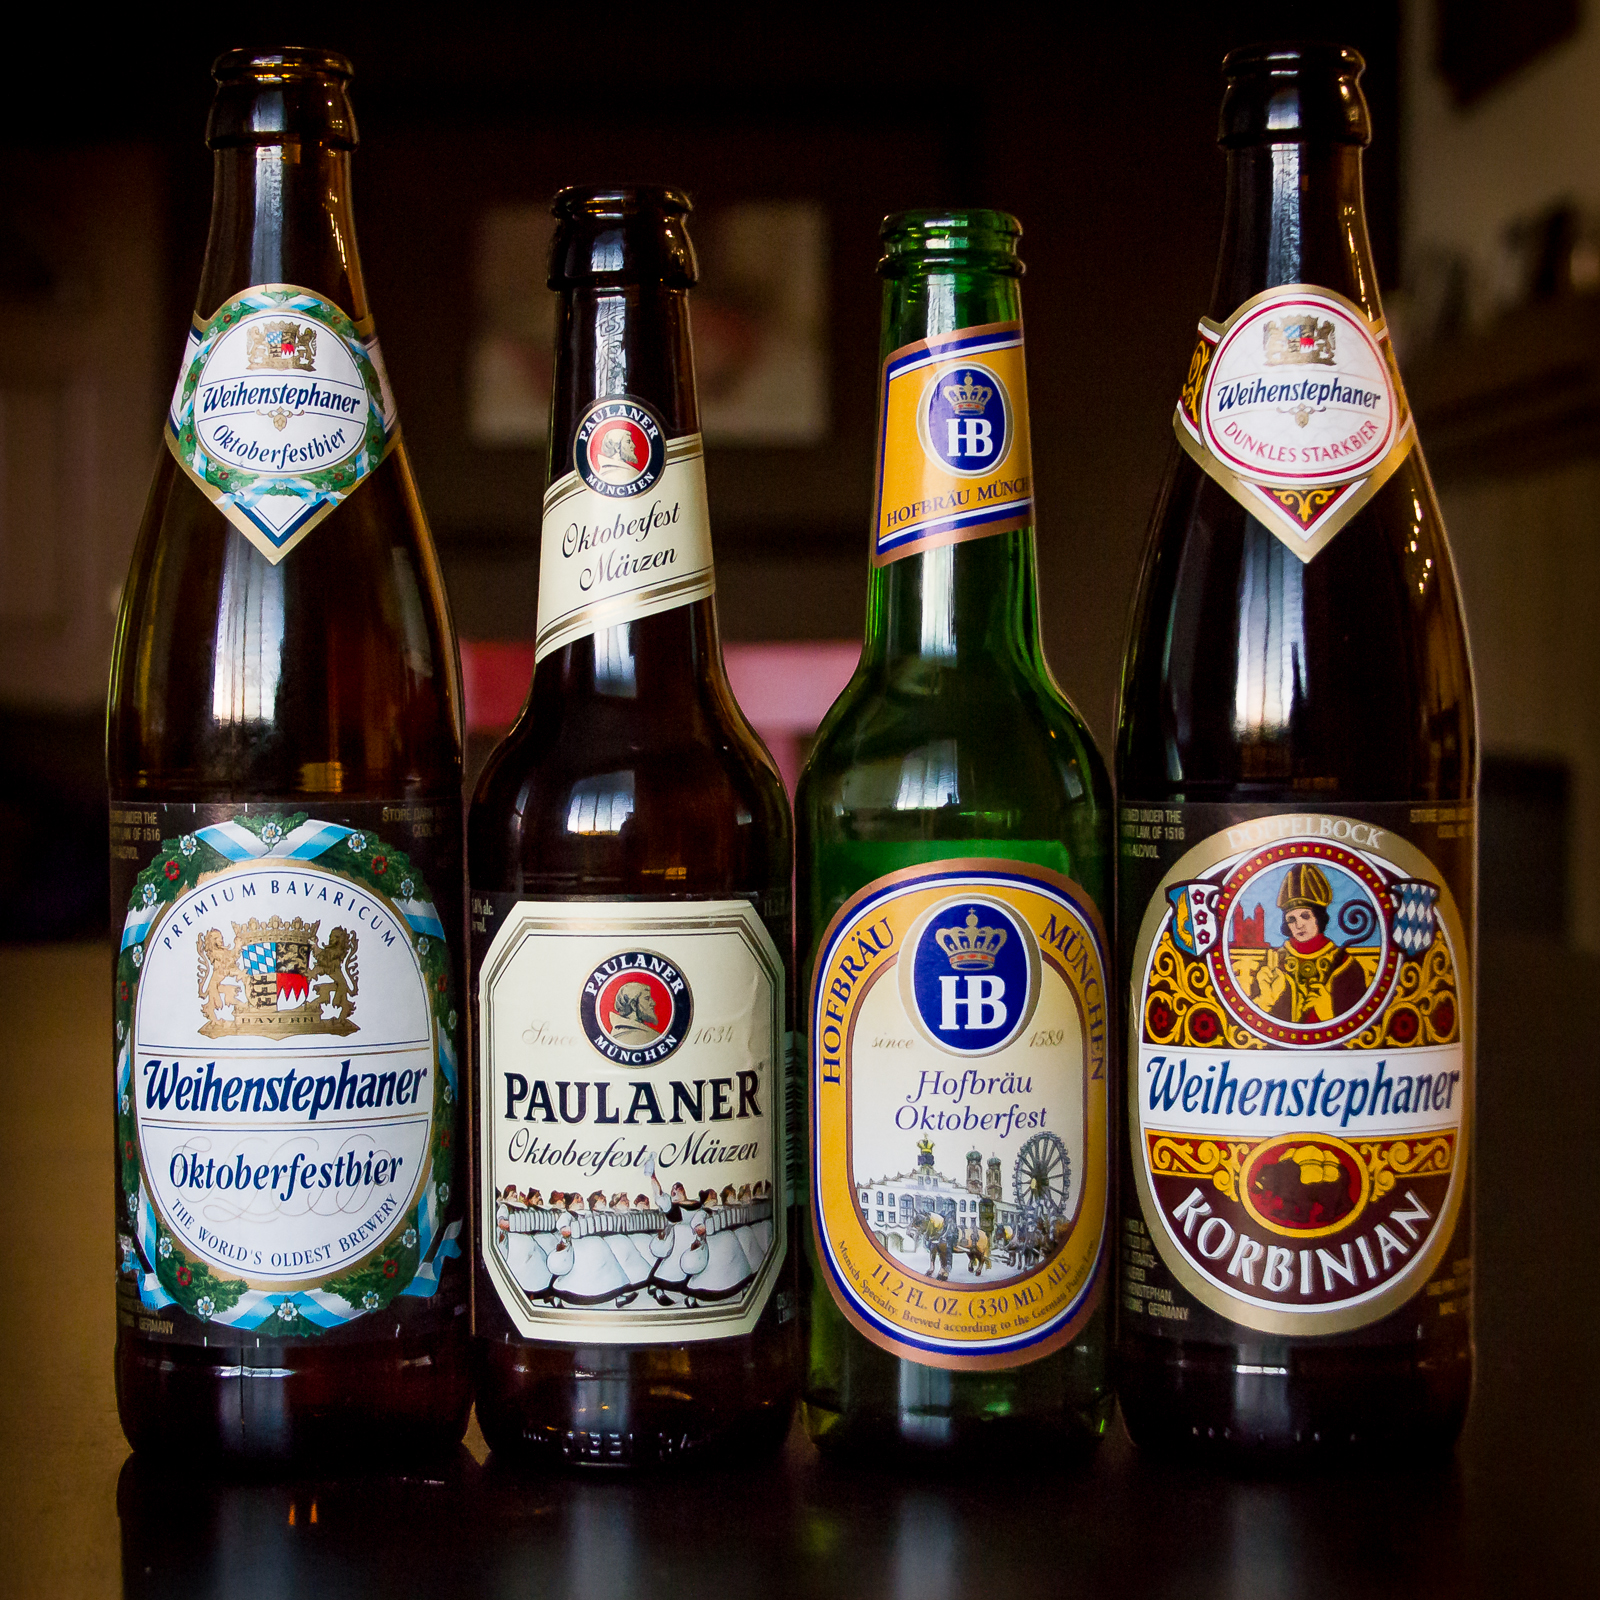 Oktoberfest Beers from Weihenstephaner, Hofbräu, and Paulaner. Also, Weihenstephaner Korbinian Doppelbock for good measure.